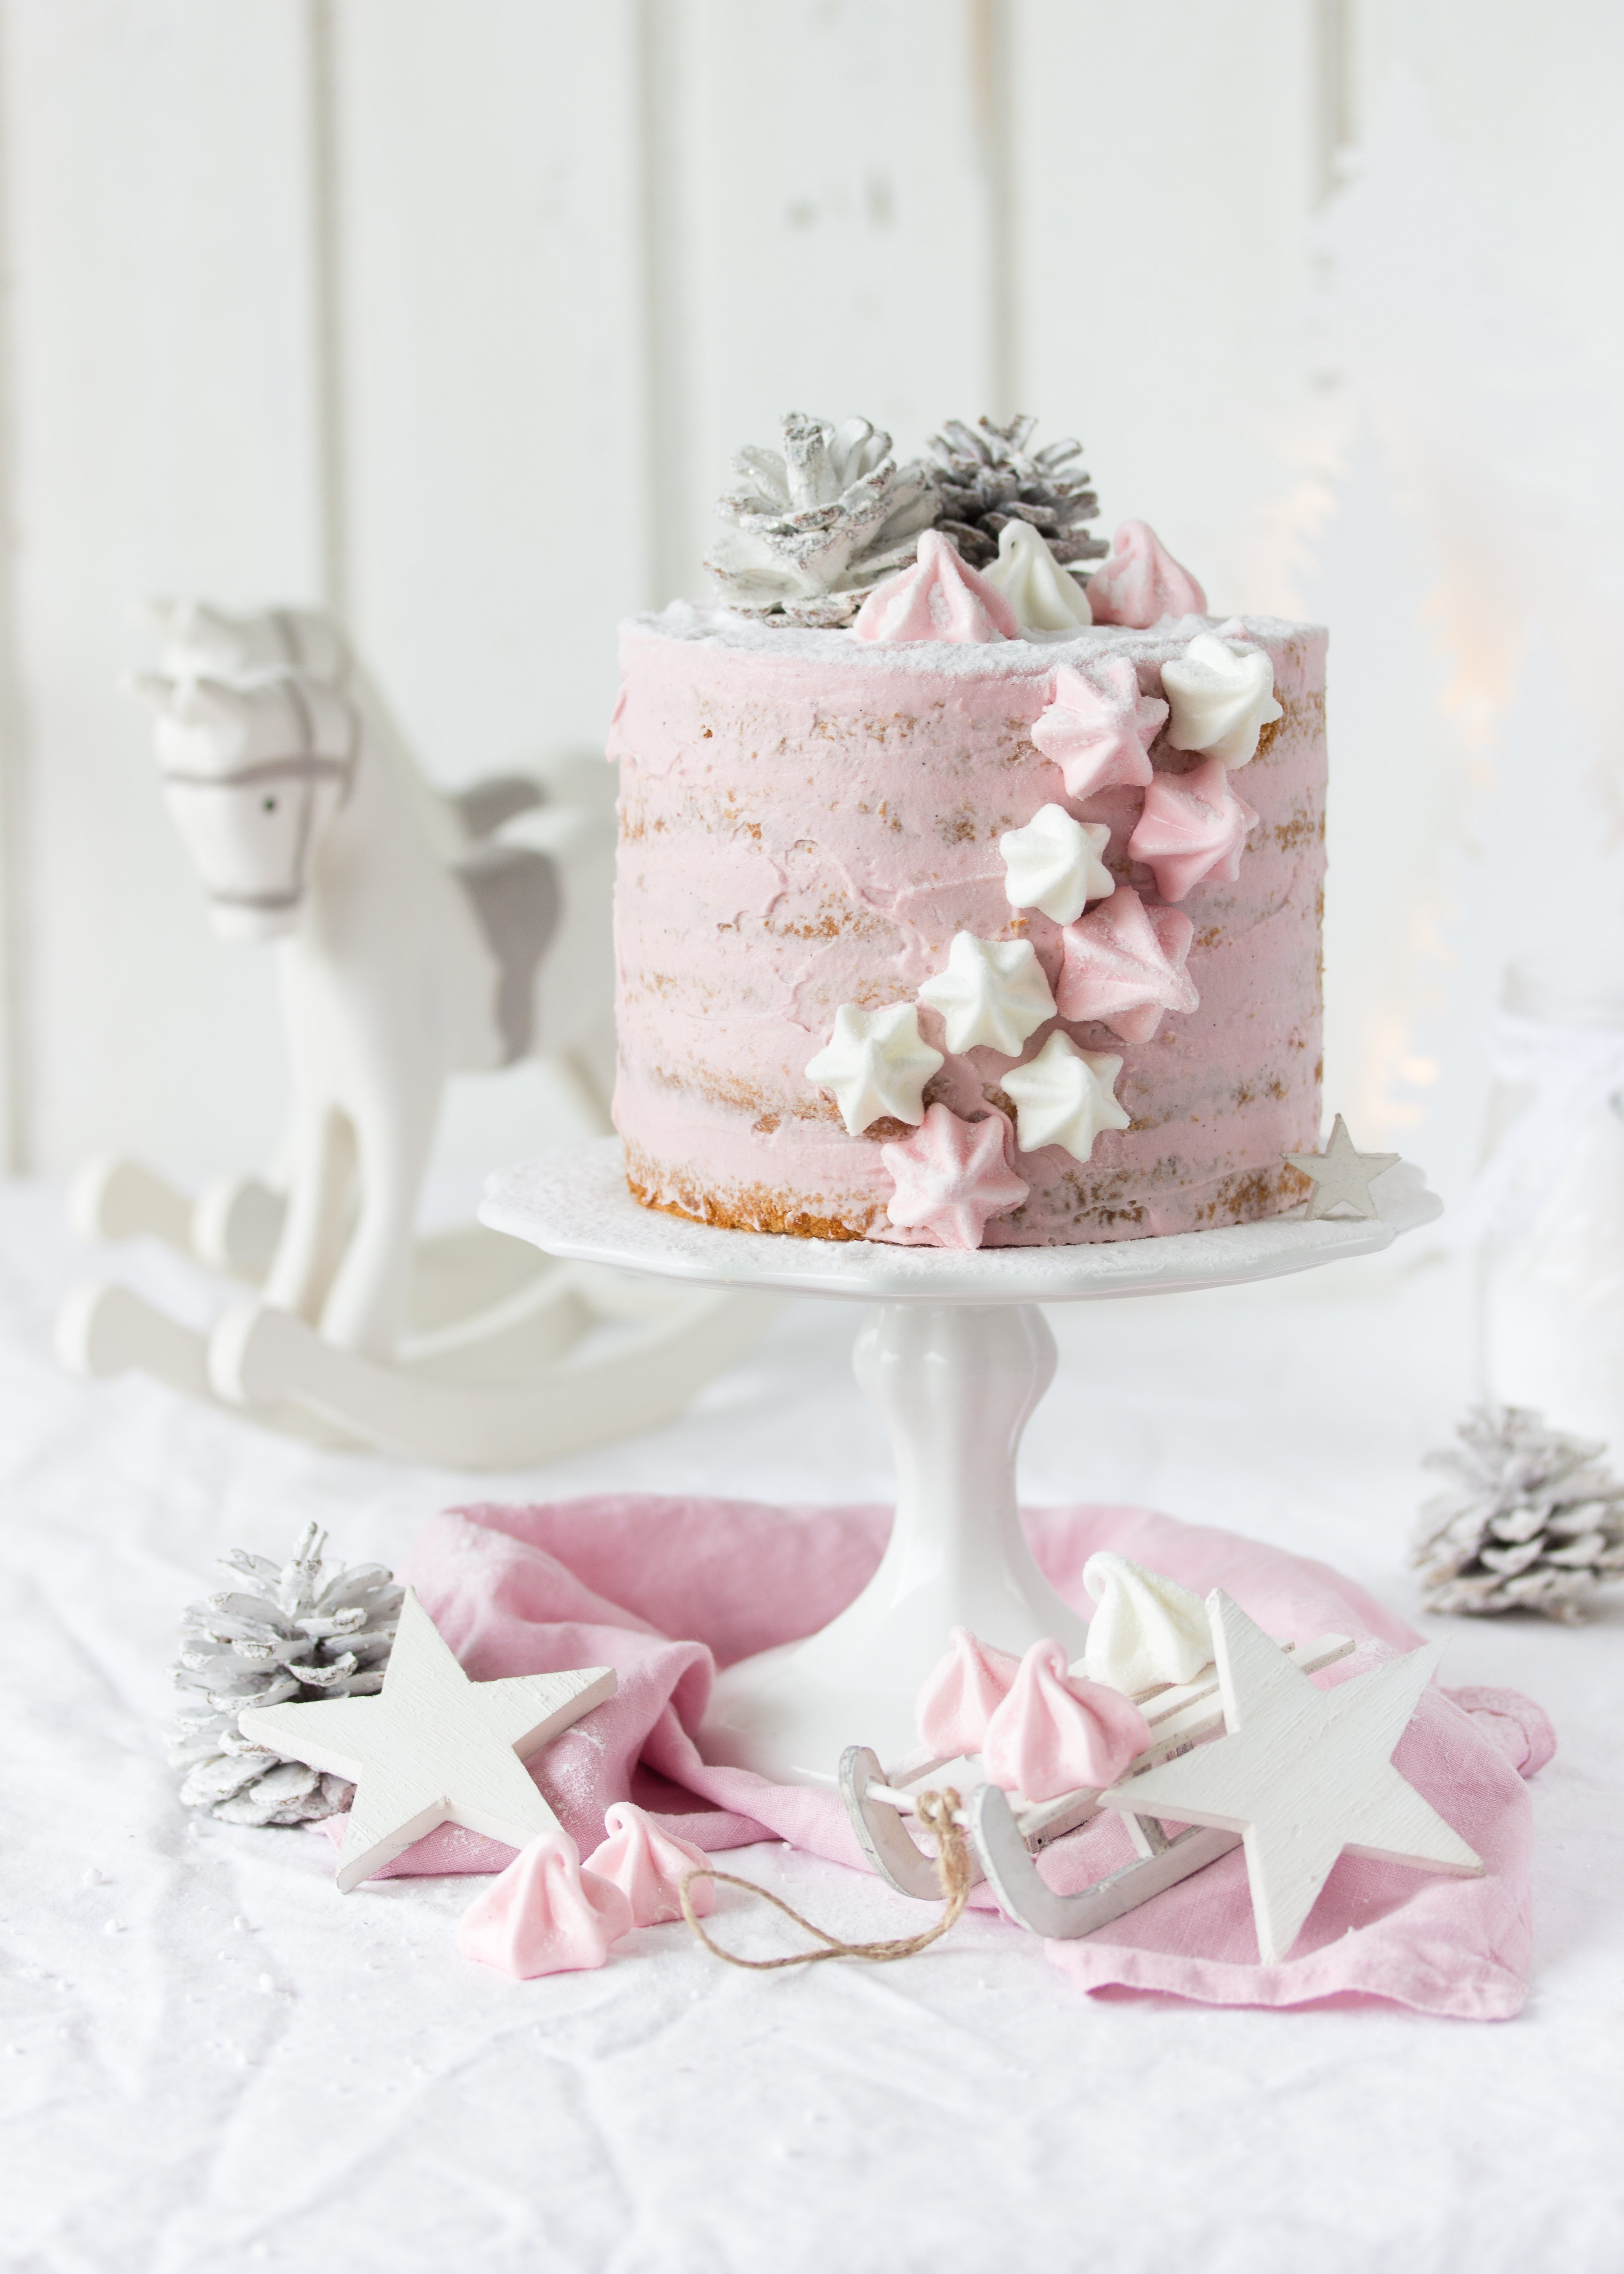 Rezept Wintertorte Himbeeren Marzipan Weihnachten Advent Backen Baiser Biskuit